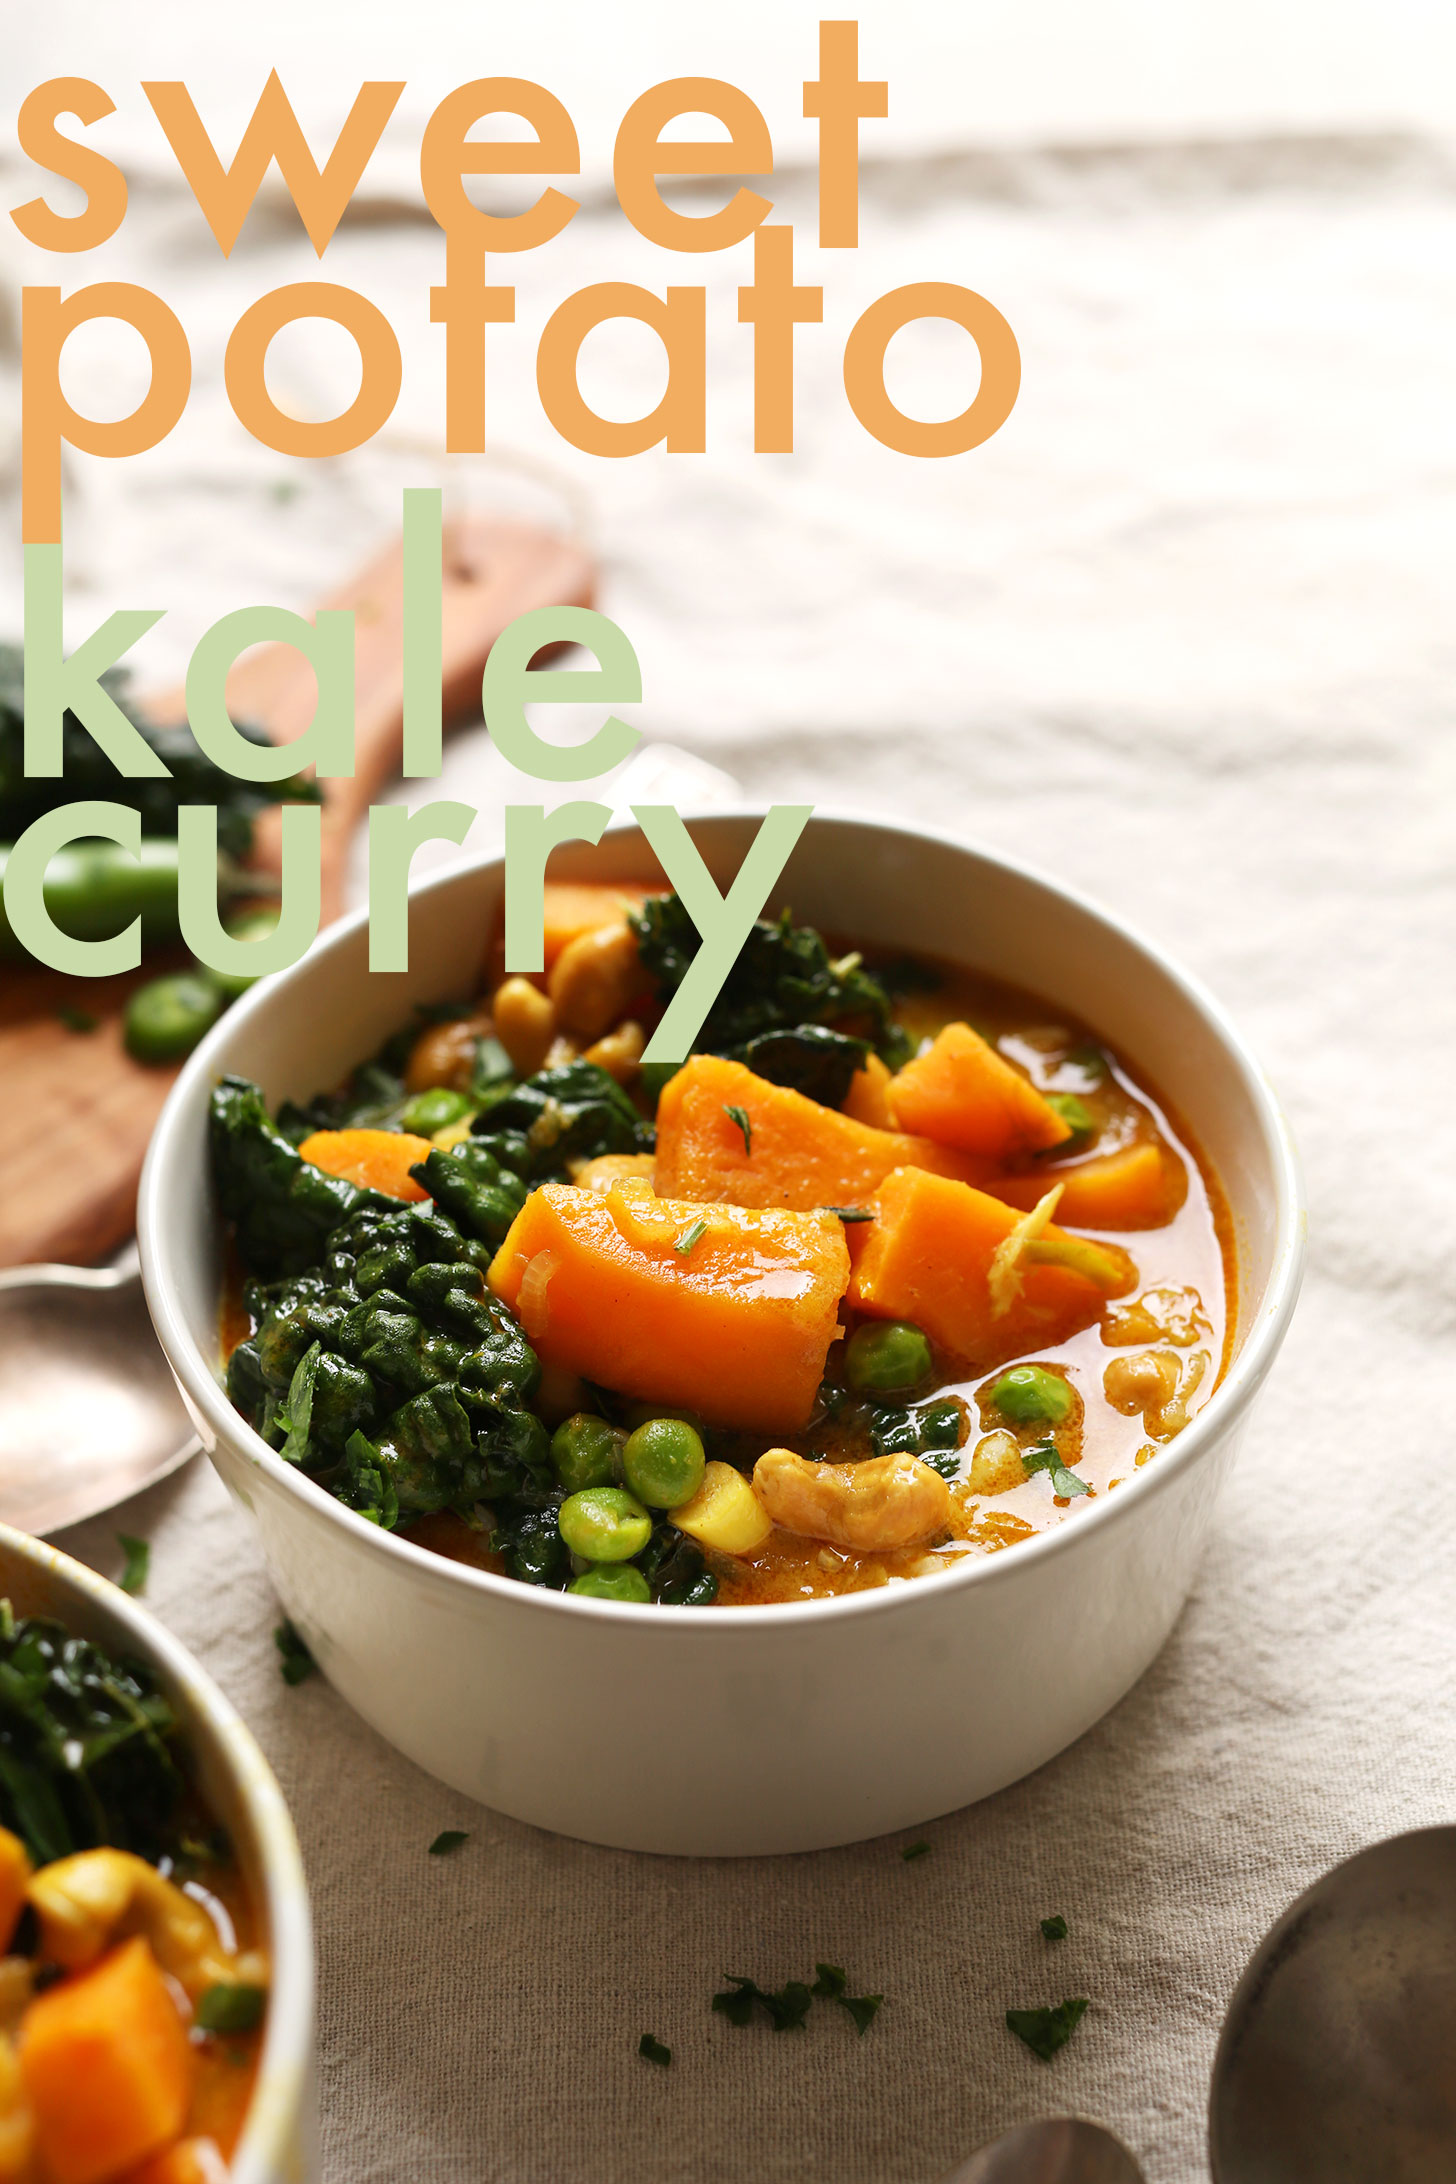 Bowl of our gluten-free Sweet Potato Kale Curry for healthy plant-based meal